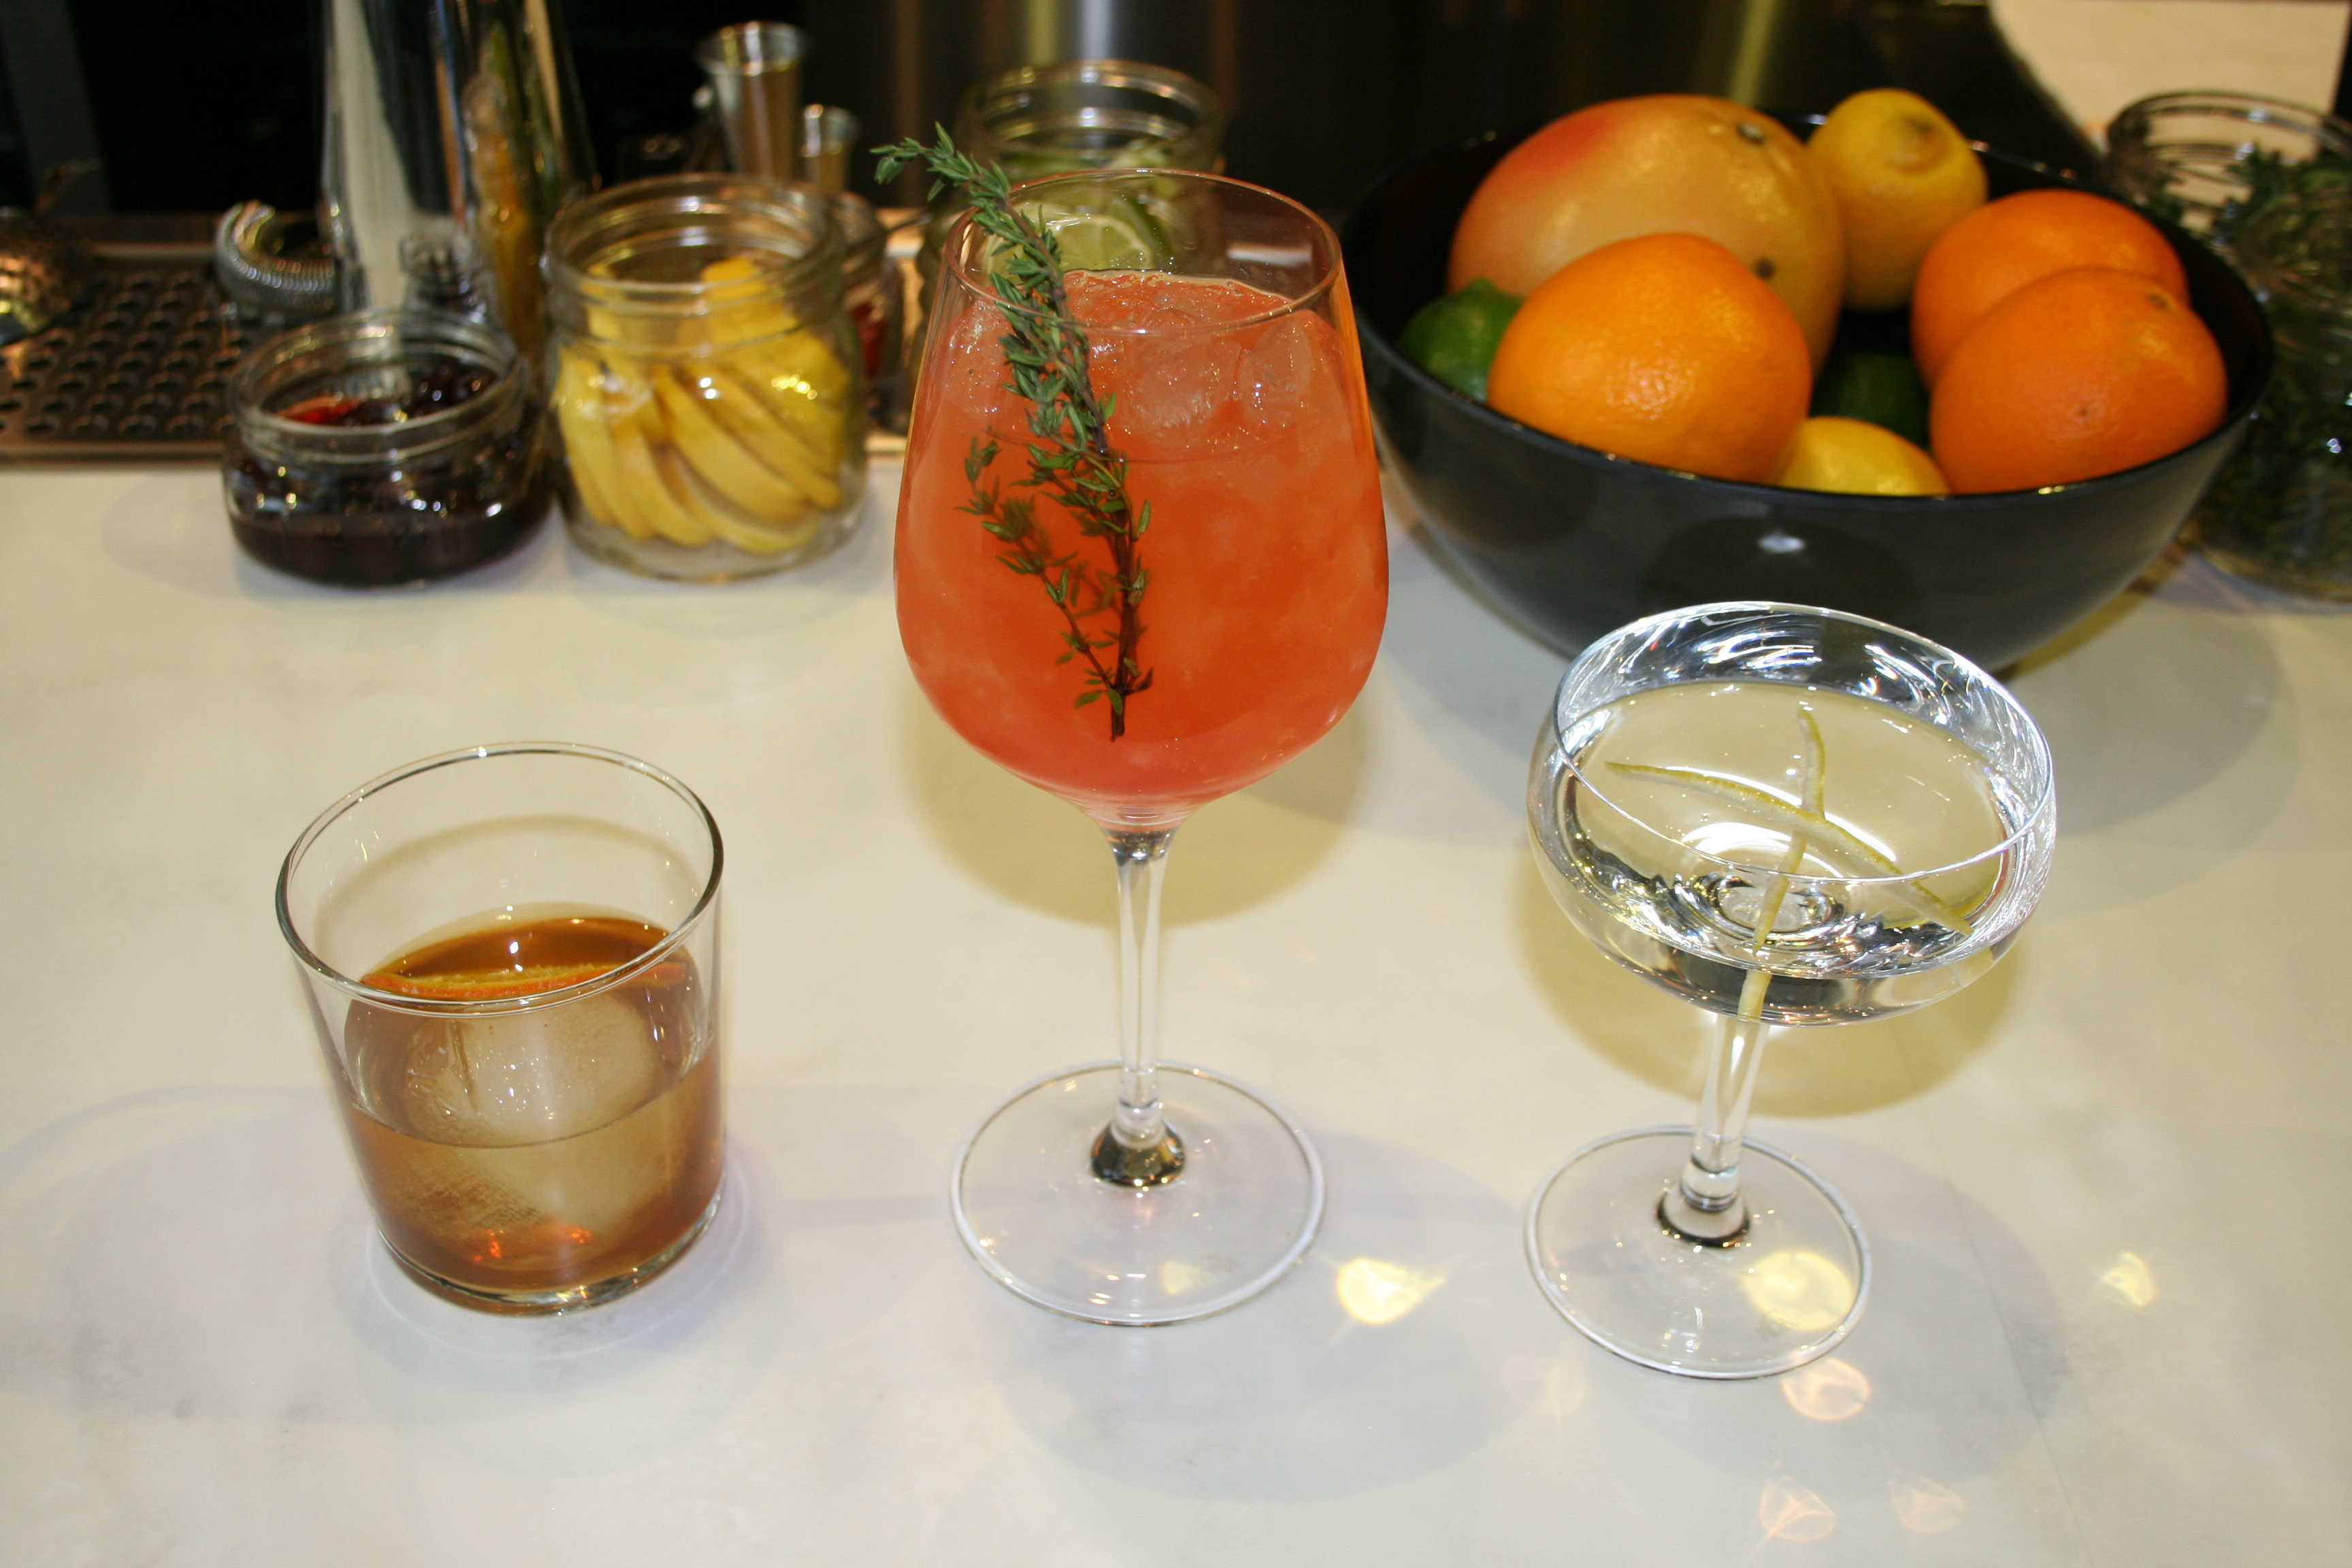 The cocktail program includes the Papa Bear(left) with rye, amaro, cinnamon raisins infused sweet vermouth, pimento bitters and alleppo; the Gracias Amigo (center) with tequila, aperol, grapefruit, agave and thyme; and the MIC Martini (right) with  vodka or gin, dolin blanc and orange bitter. (Photo: Mark Heckathorn/DC on Heels)